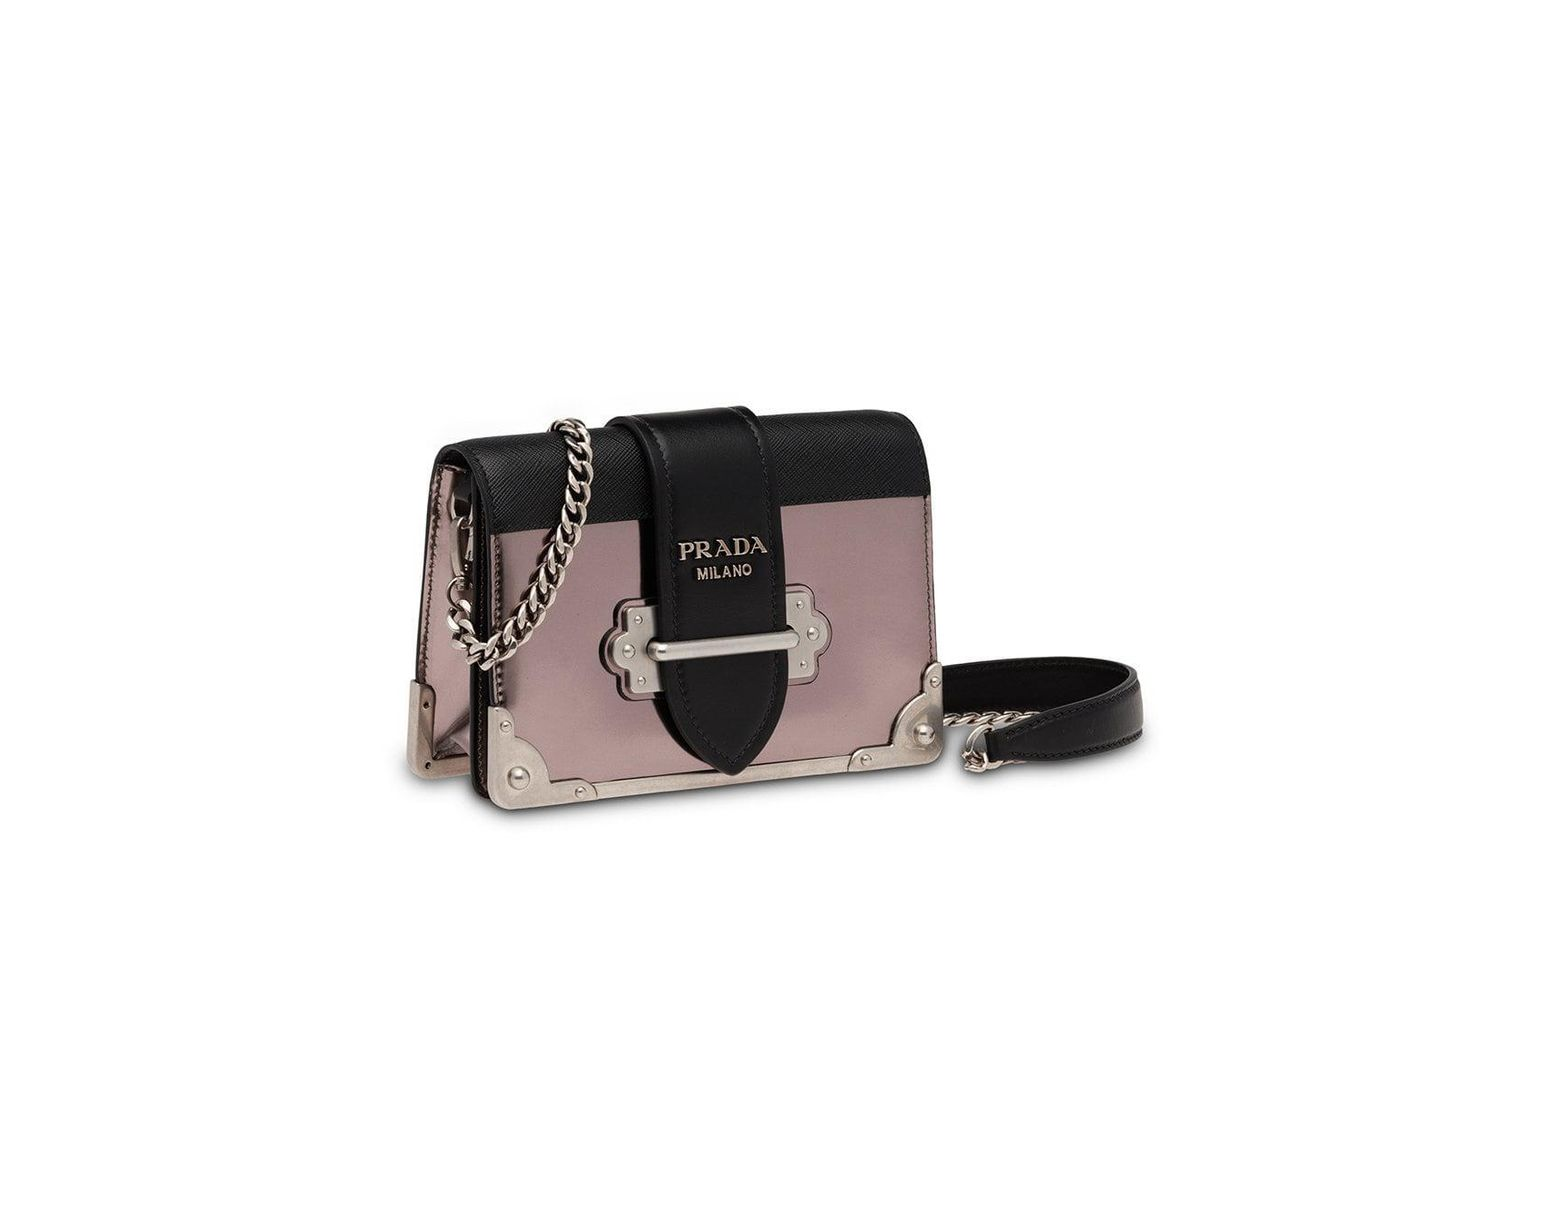 6ed7f85e085 Prada Grey, Black And Pink Cahier Mini Leather Shoulder Bag in Gray - Lyst